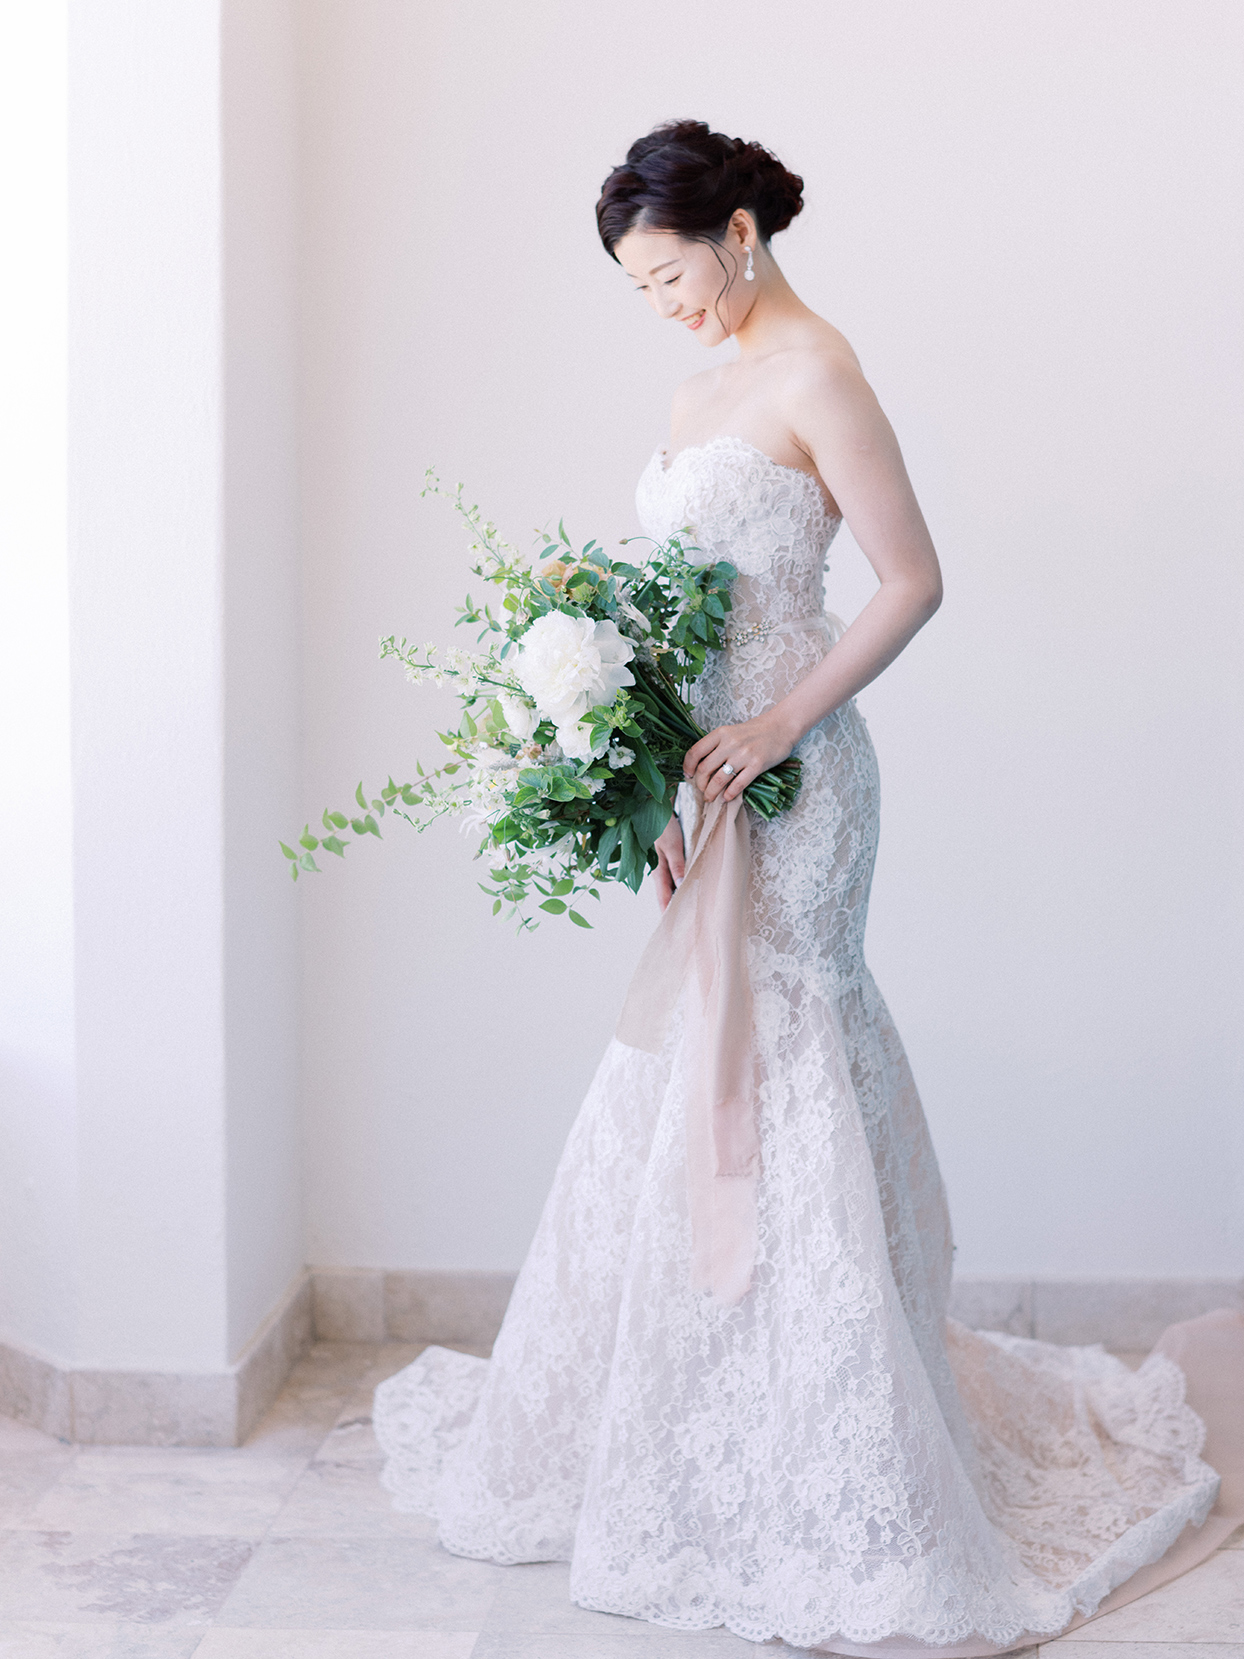 kirsten deran wedding bride in lace overlay gown